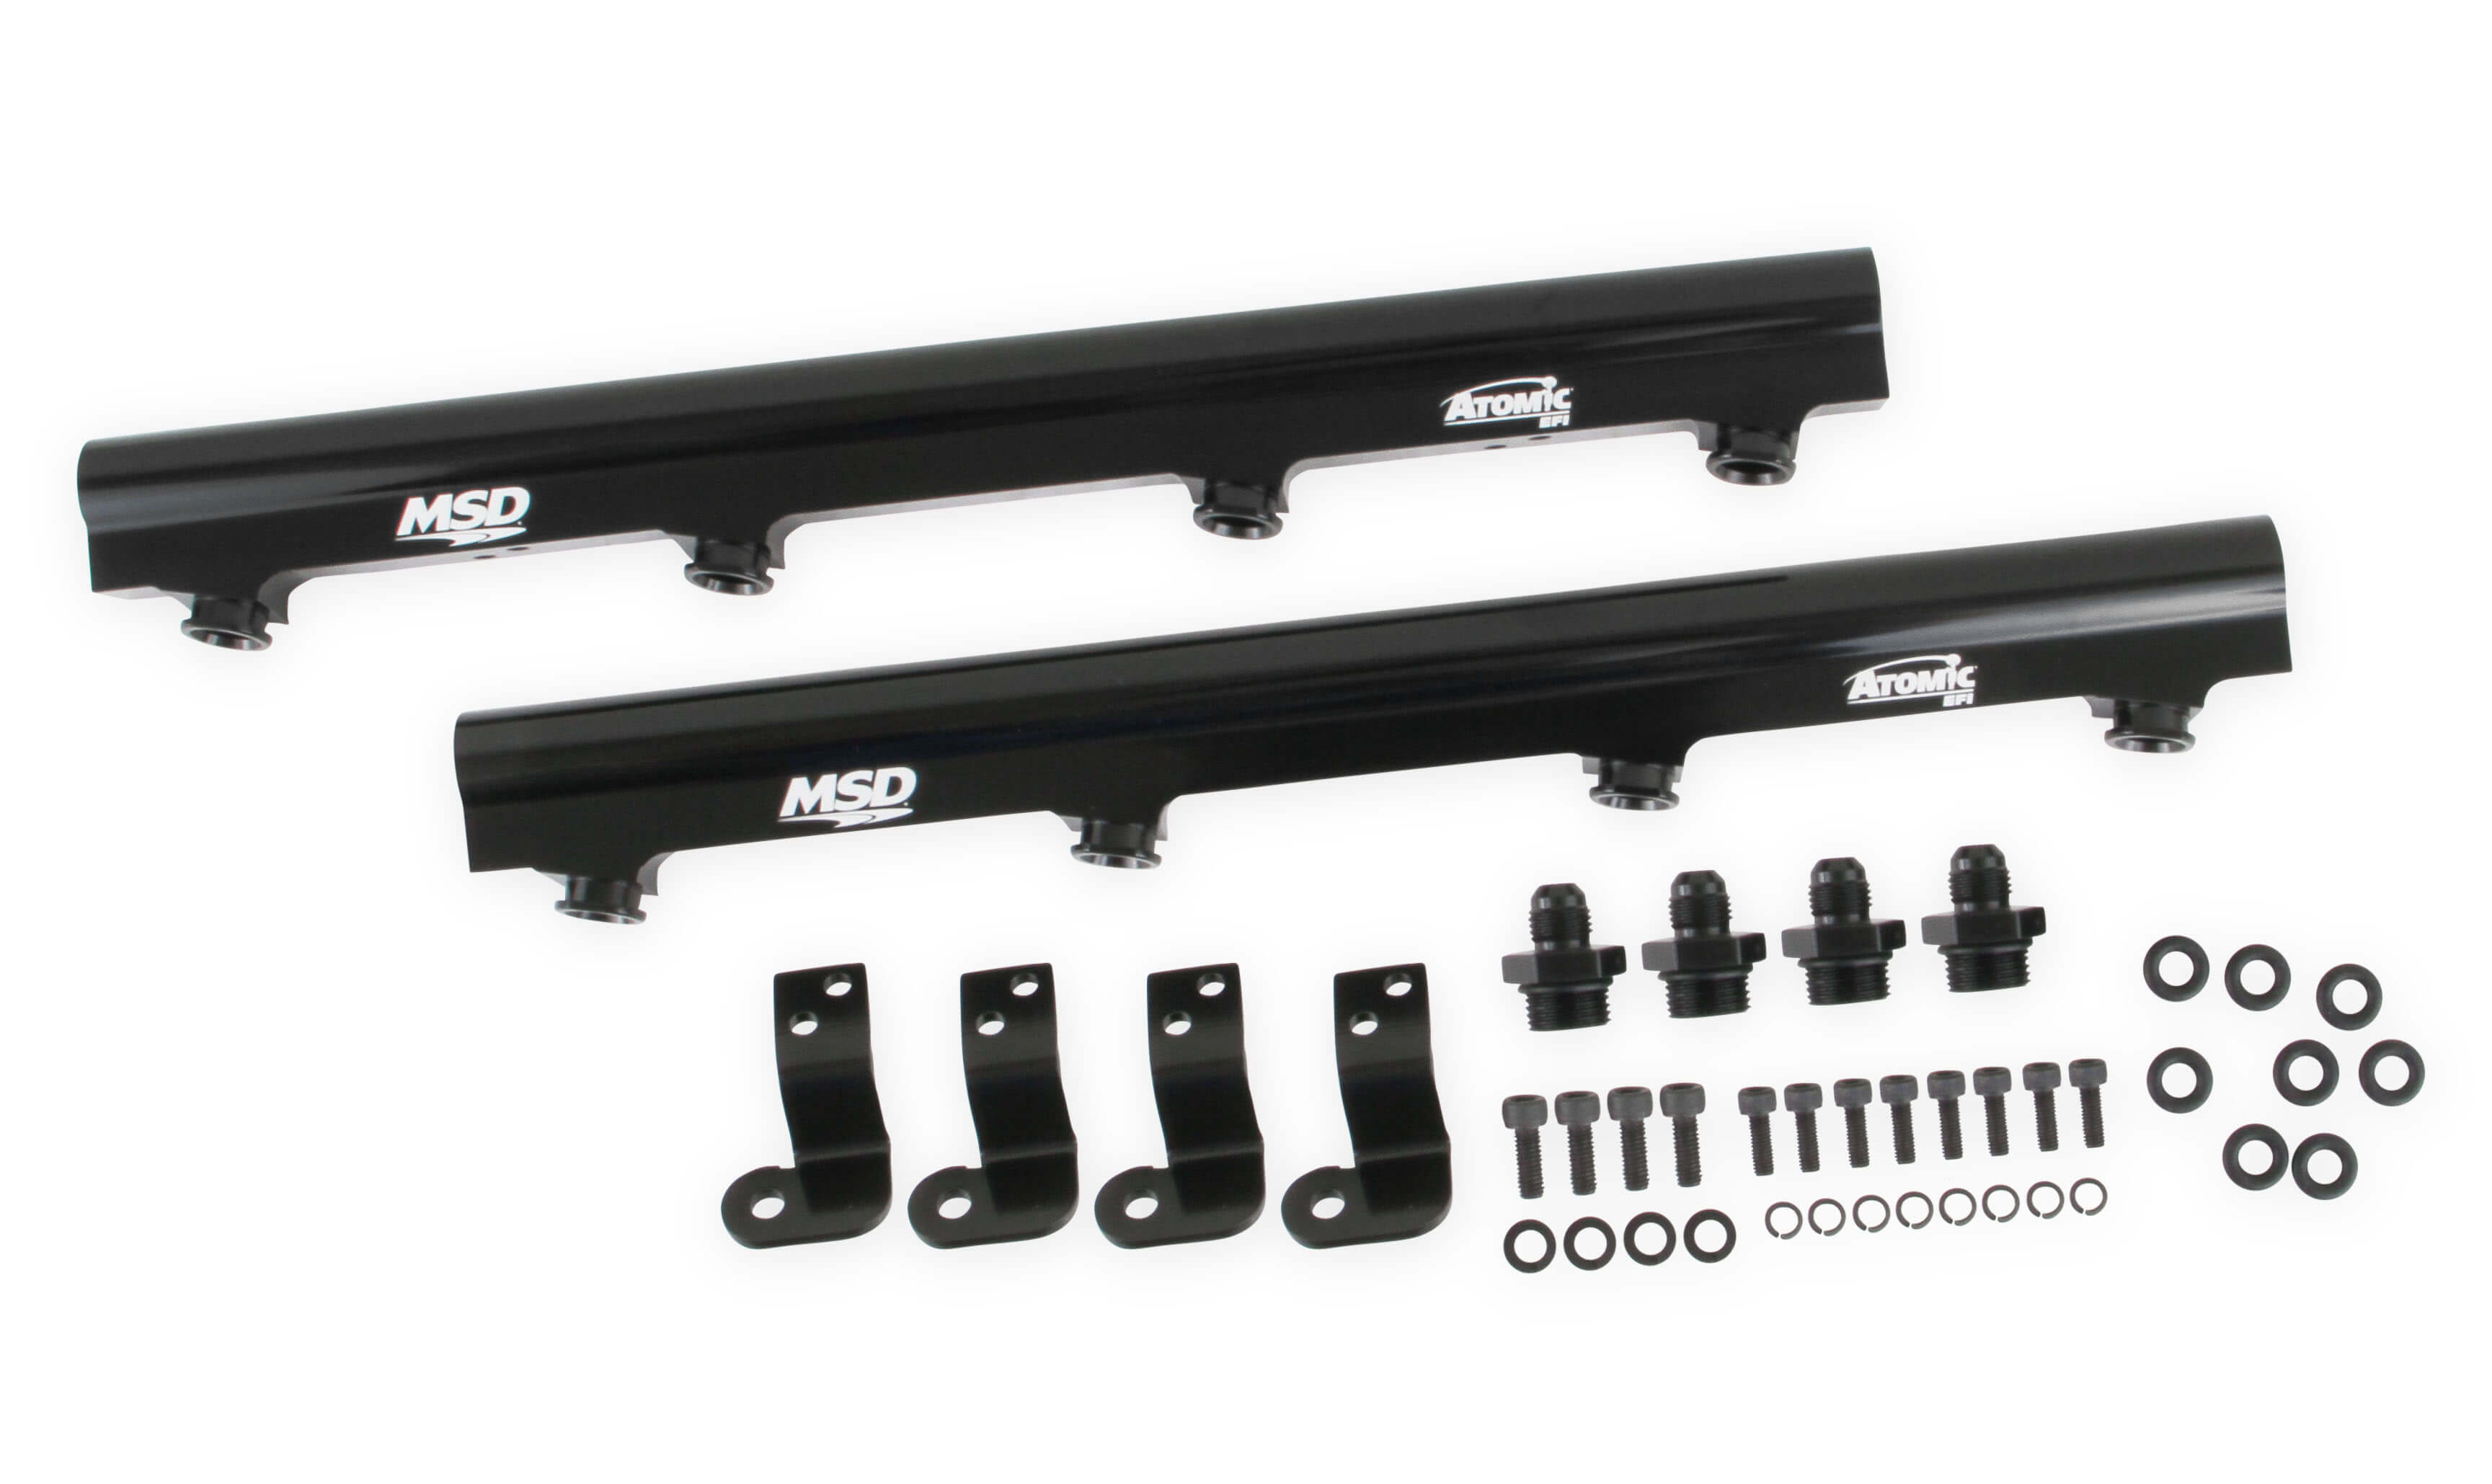 LS1/LS2/LS6 MSD Atomic EFI Billet Fuel Rails